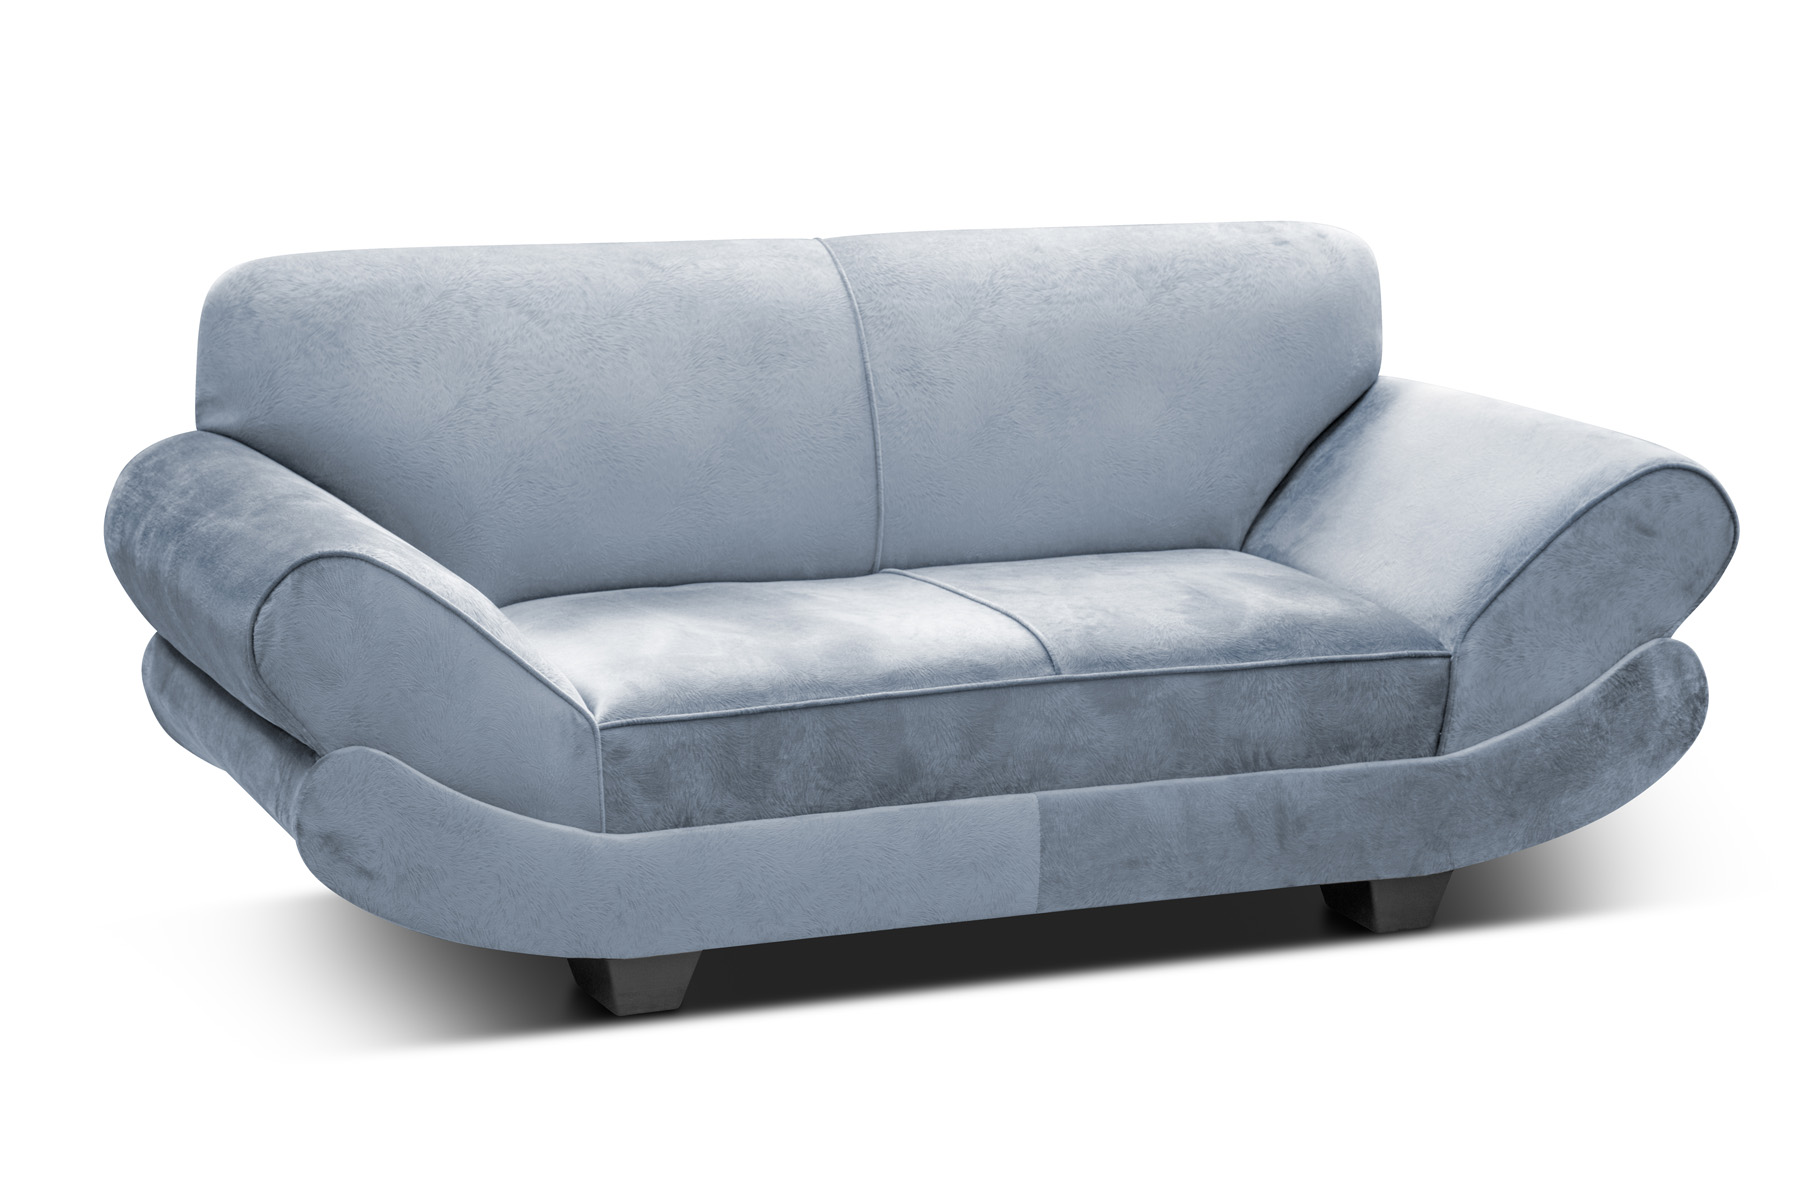 Furniture Beds, Quality mattresses, Lounge suites, Dining Room ...